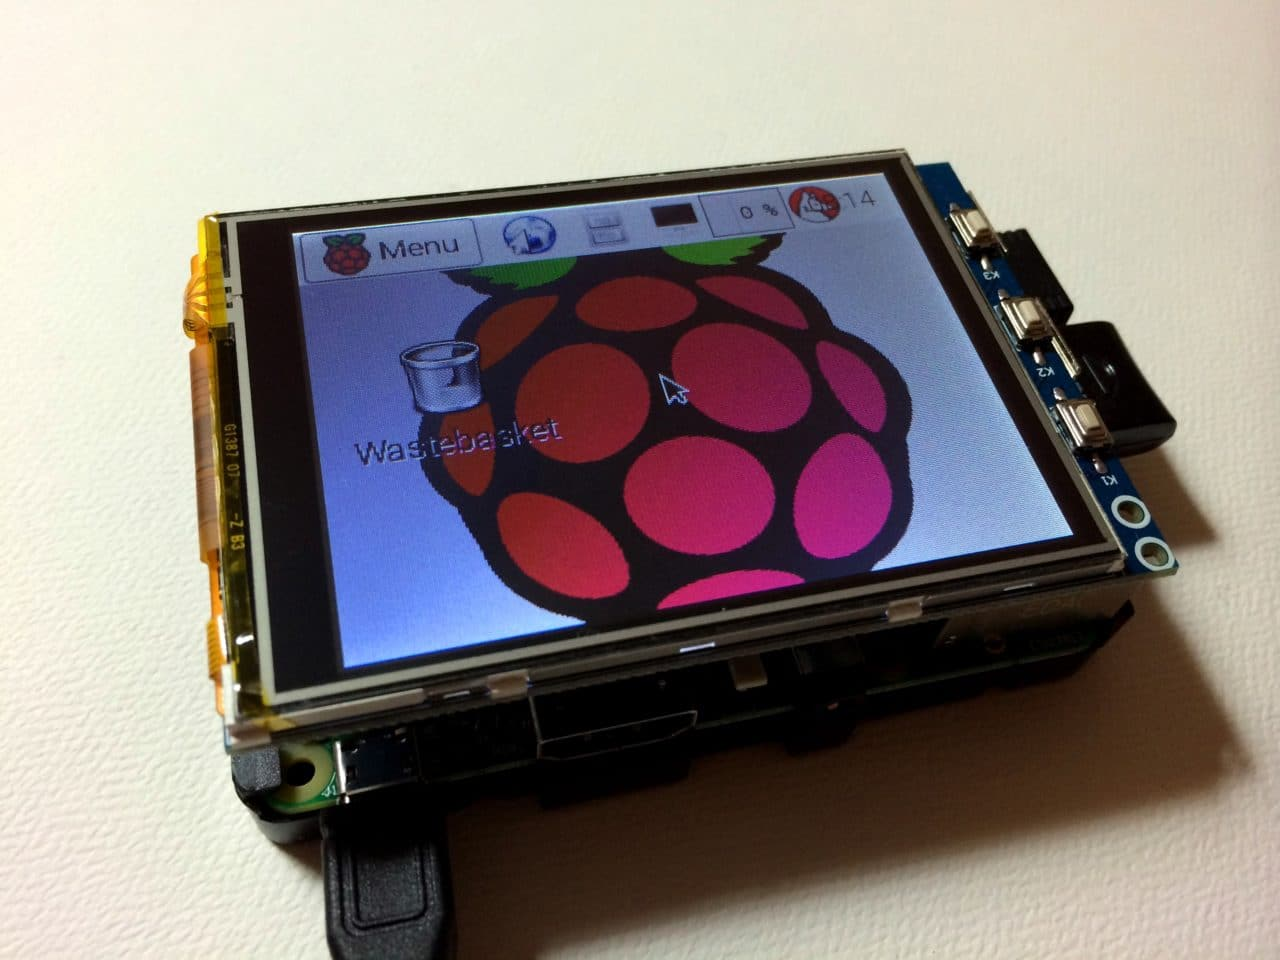 How To Set Up The Dht11 Humidity Sensor On Raspberry Pi Wiringpi Python Functions Touchscreen Calibration And Screen Rotation